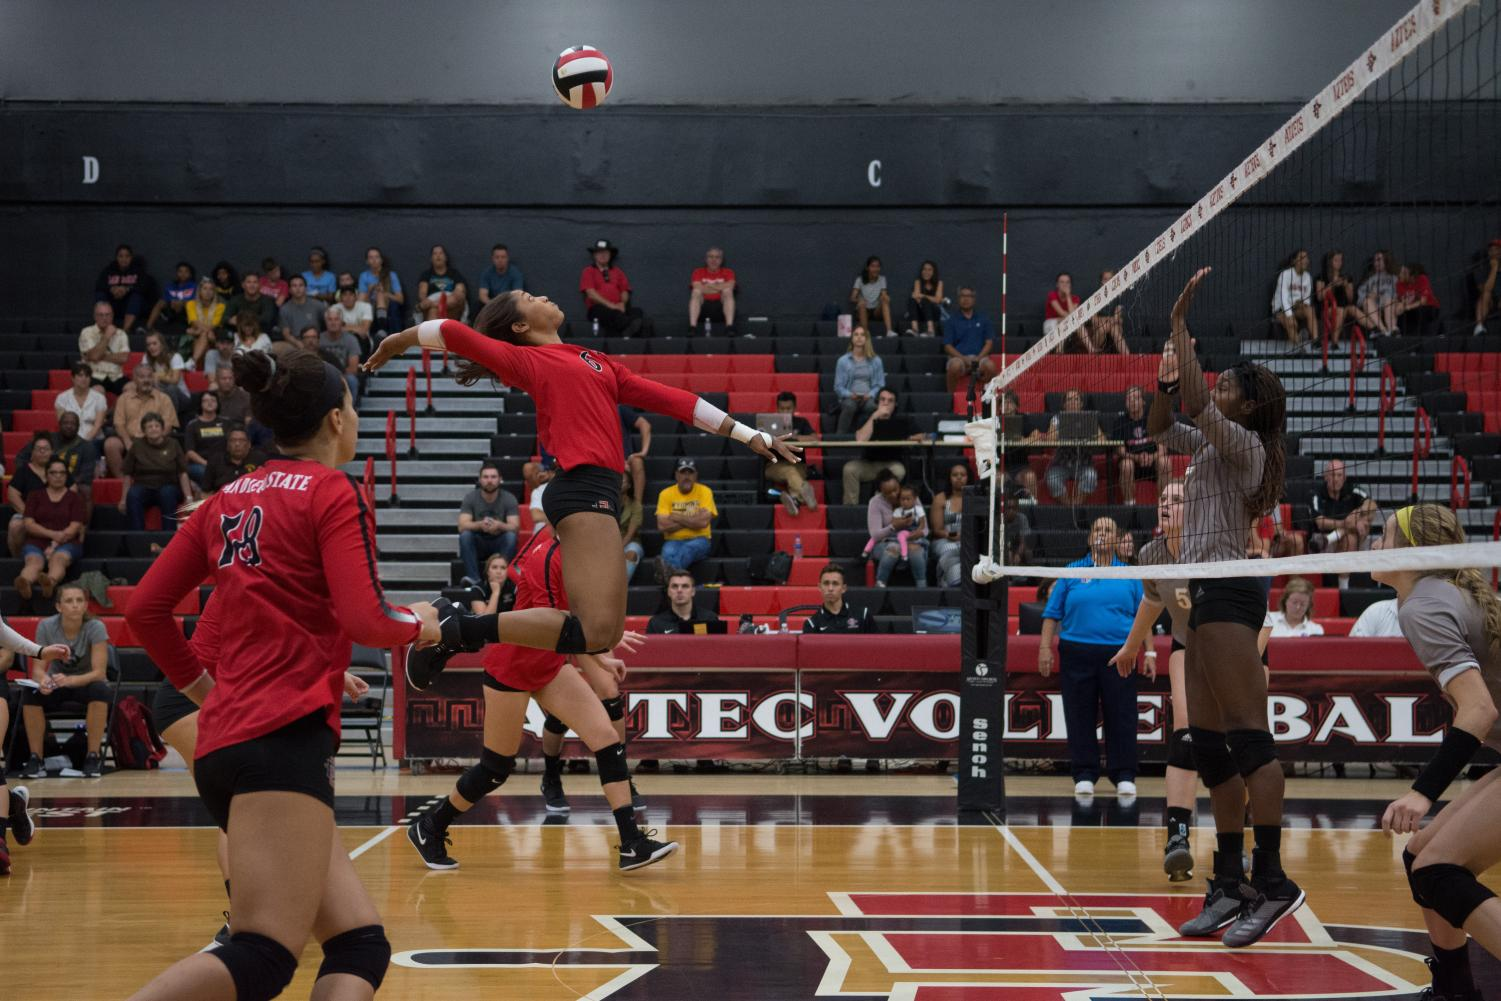 Junior outside hitter Ashlynn Dunbar goes up to spike the ball during the Aztecs five-set victory over Wyoming on Sept. 29 at Peterson Gym. Dunbar set a new career high in the match with 23 kills.